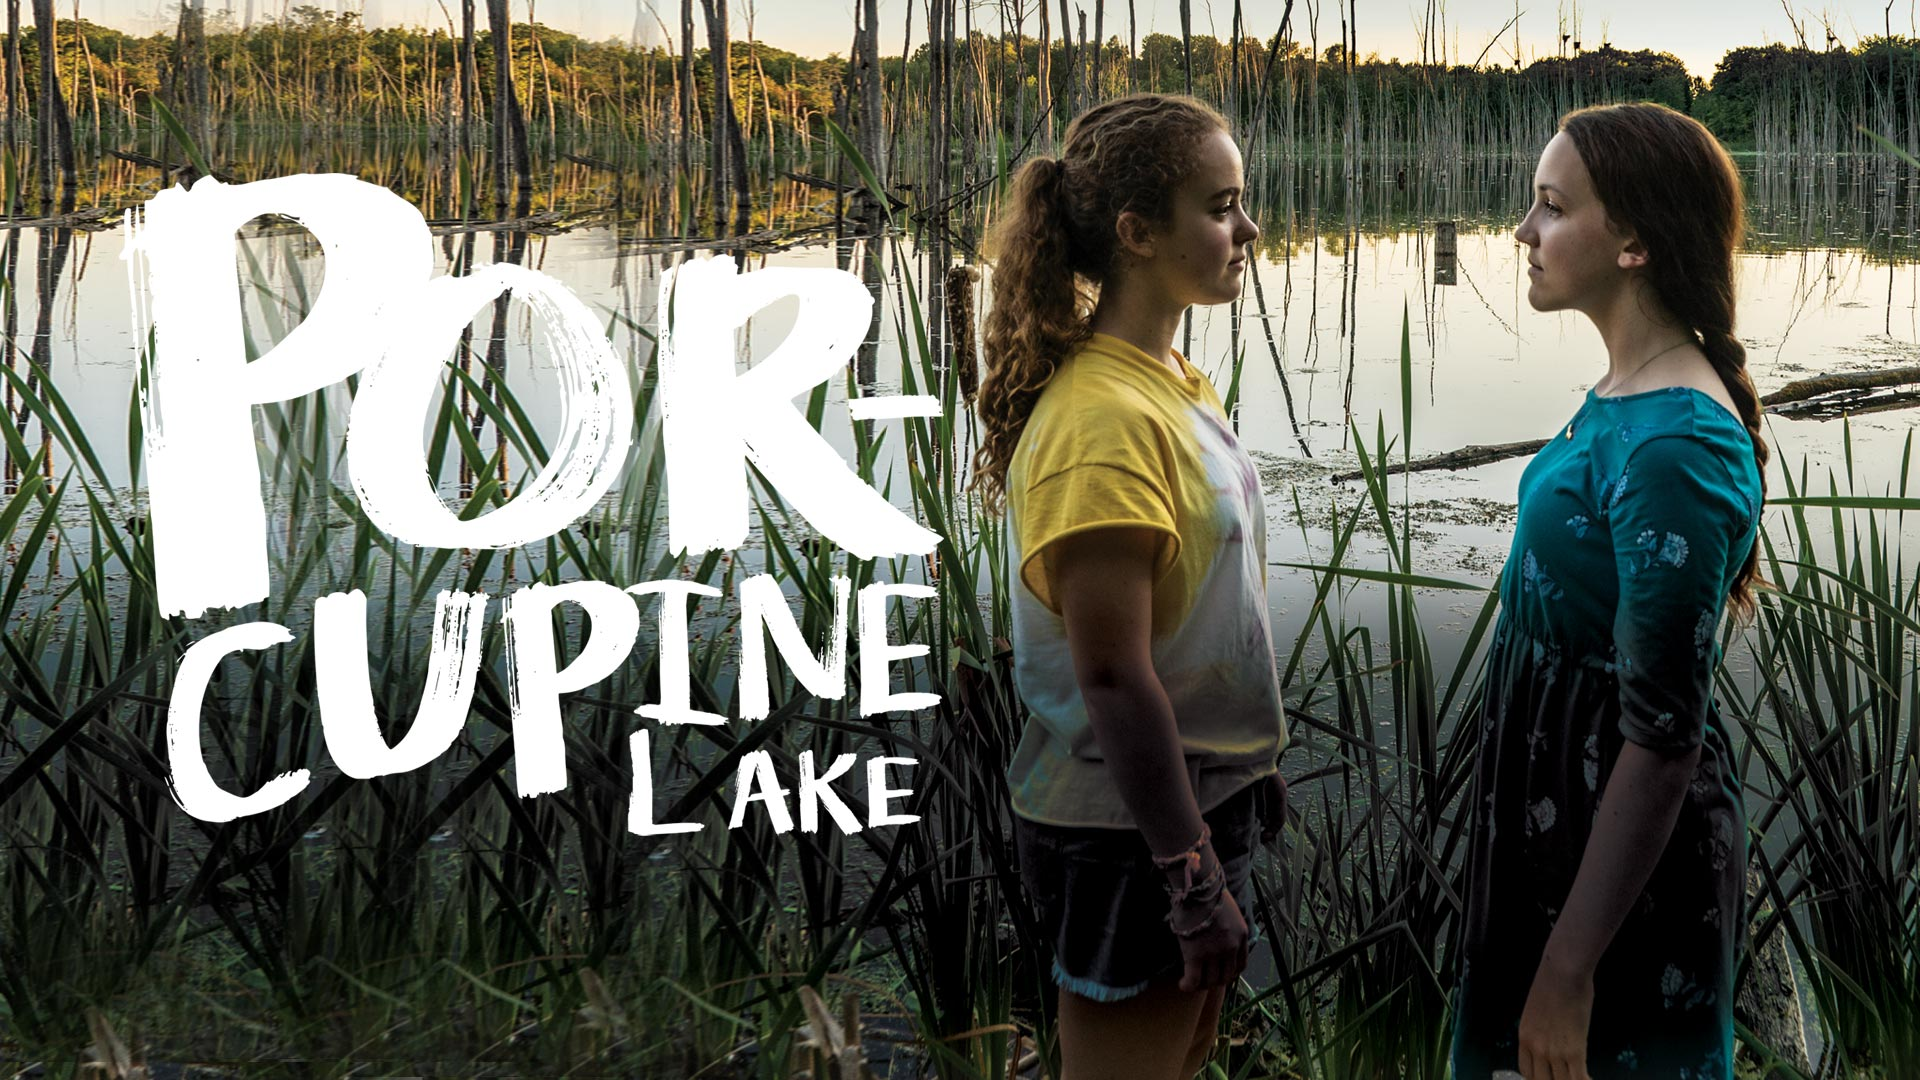 Porcupine Lake